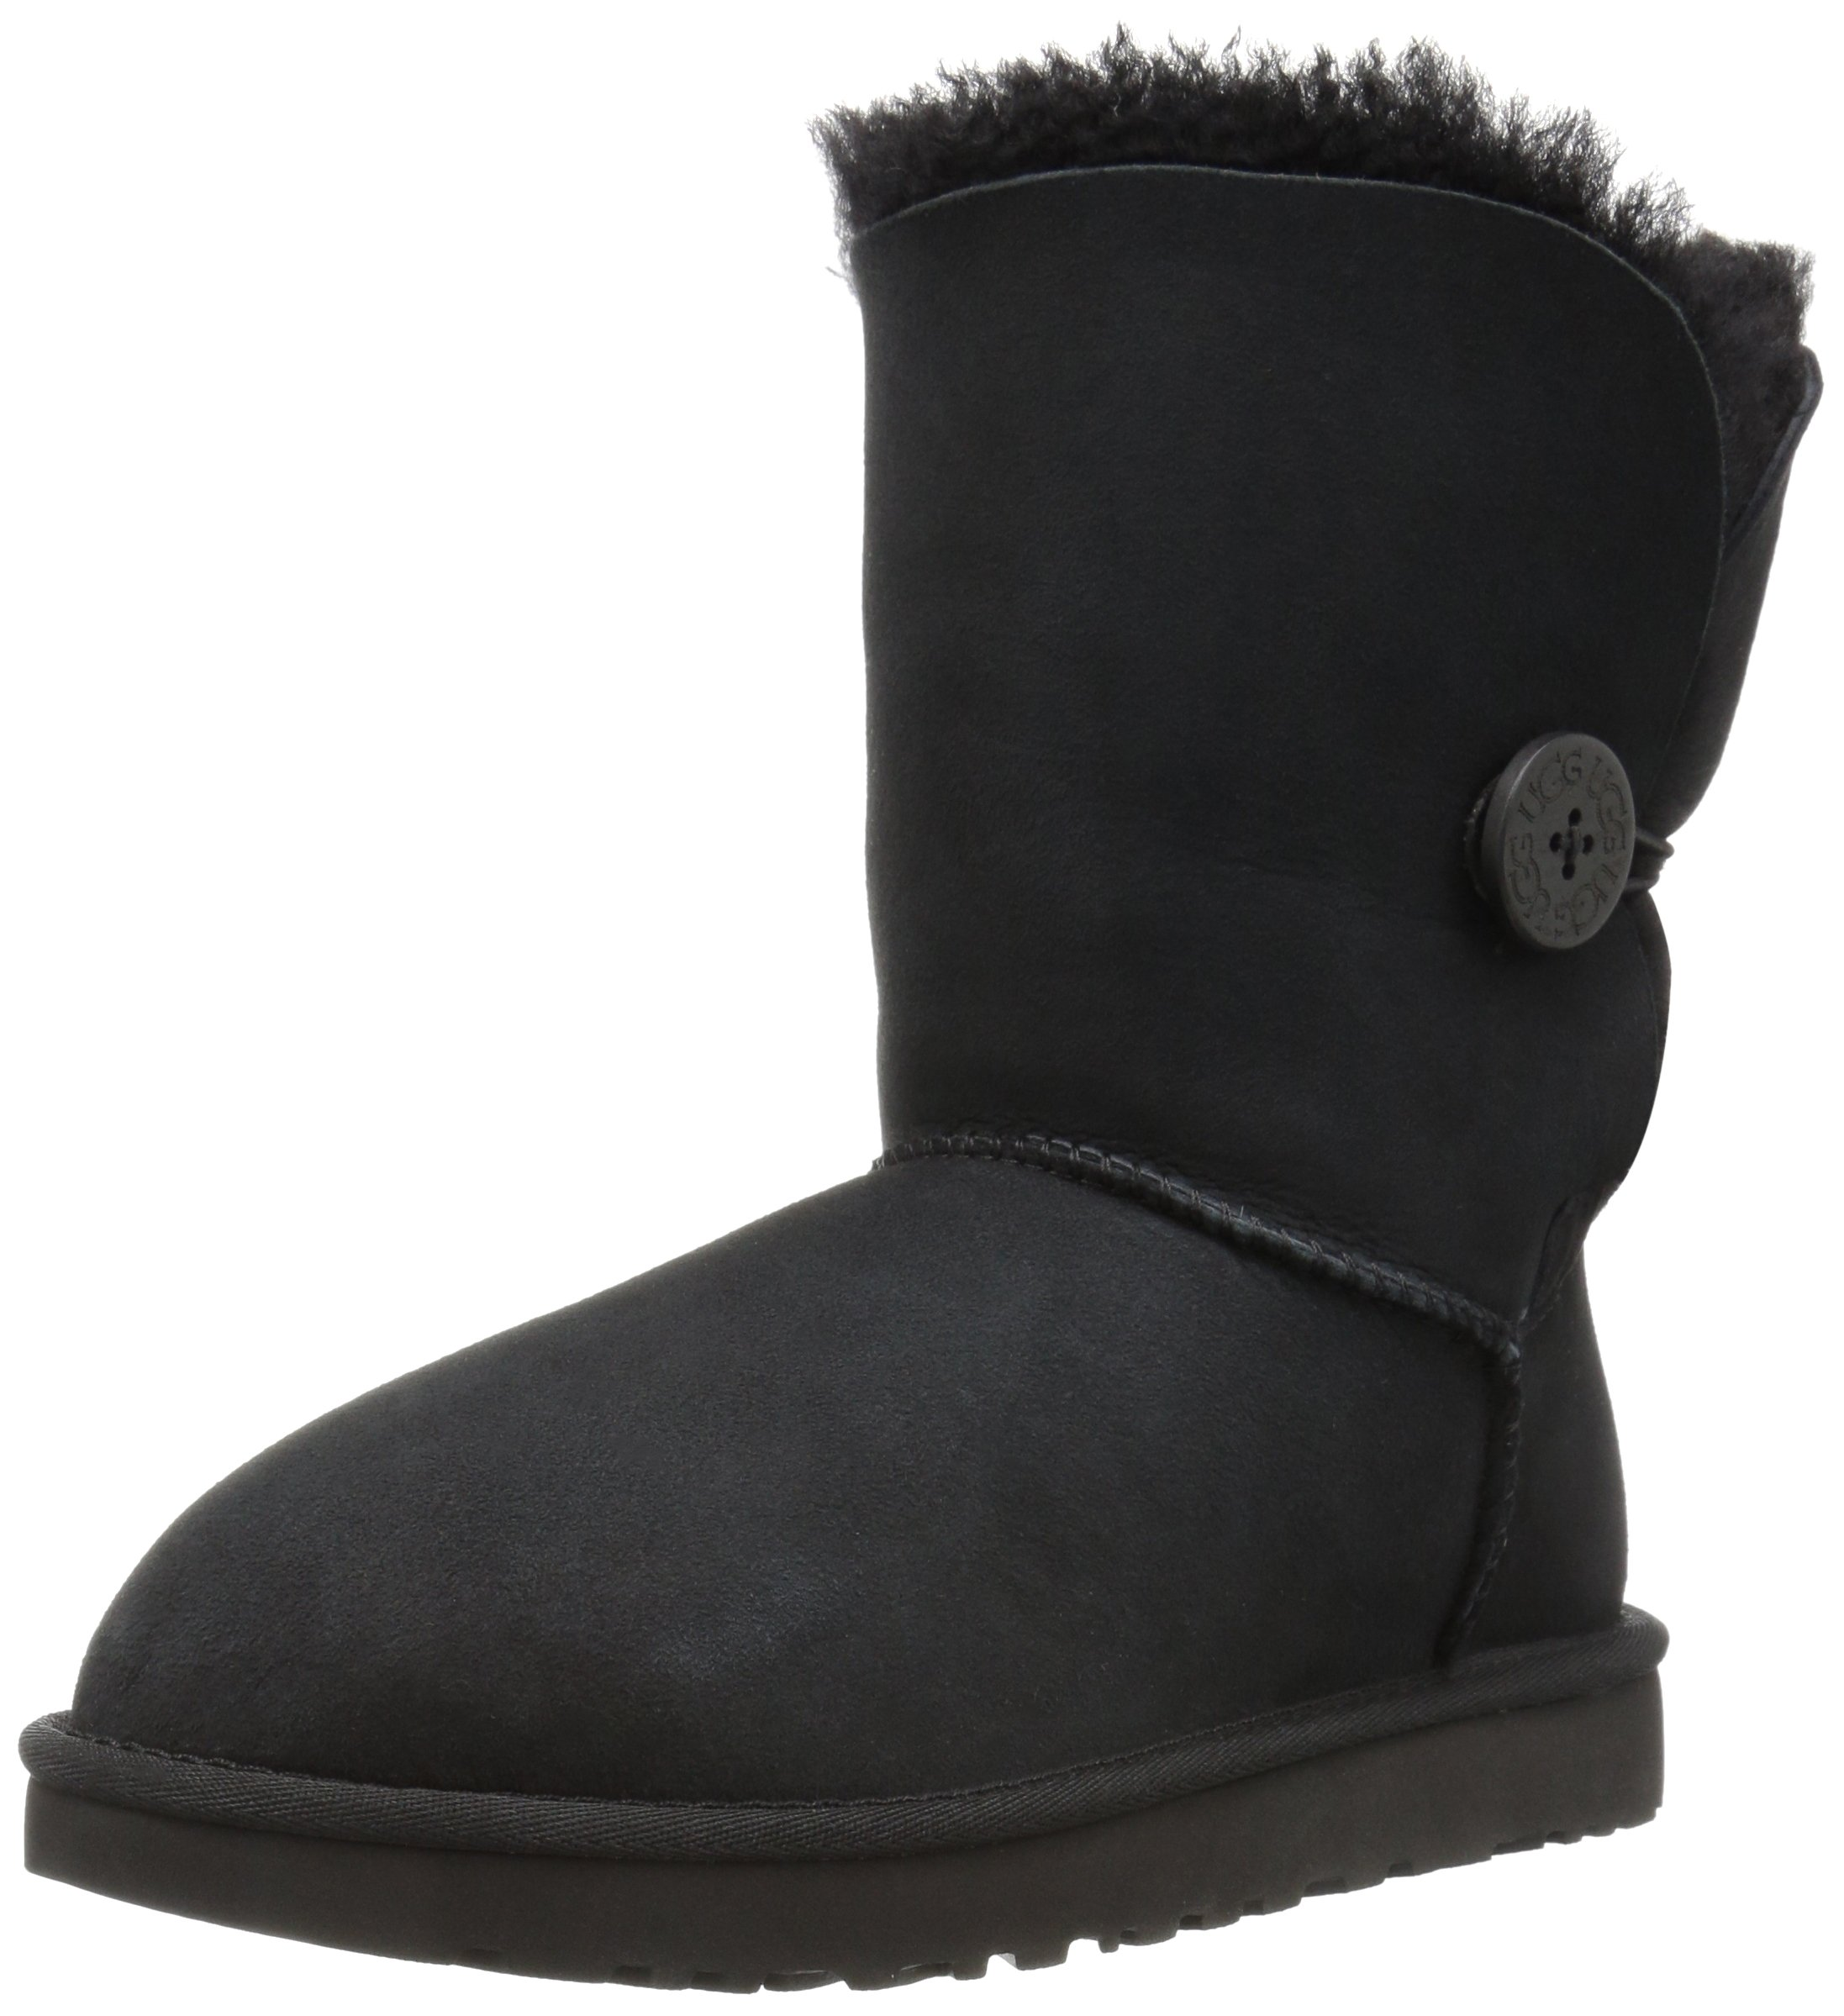 UGG Women's Bailey Button II Winter Boot, Black, 8 B US